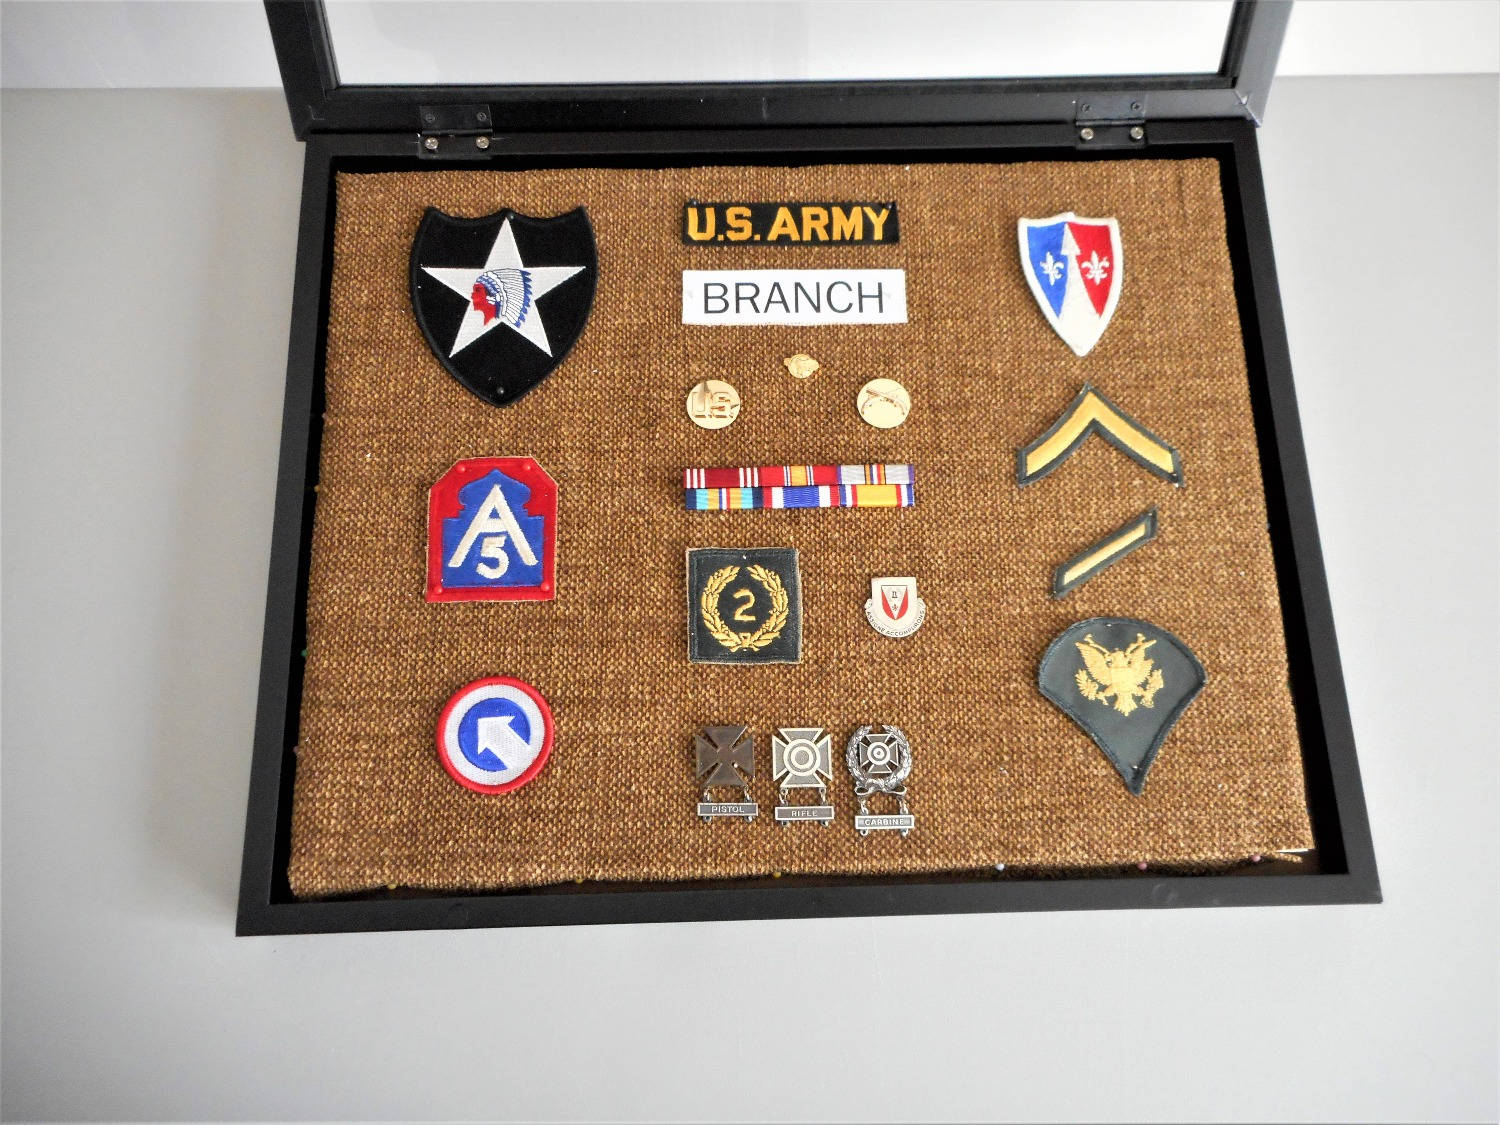 Army Expert Weapons Qualification Badge Usamm